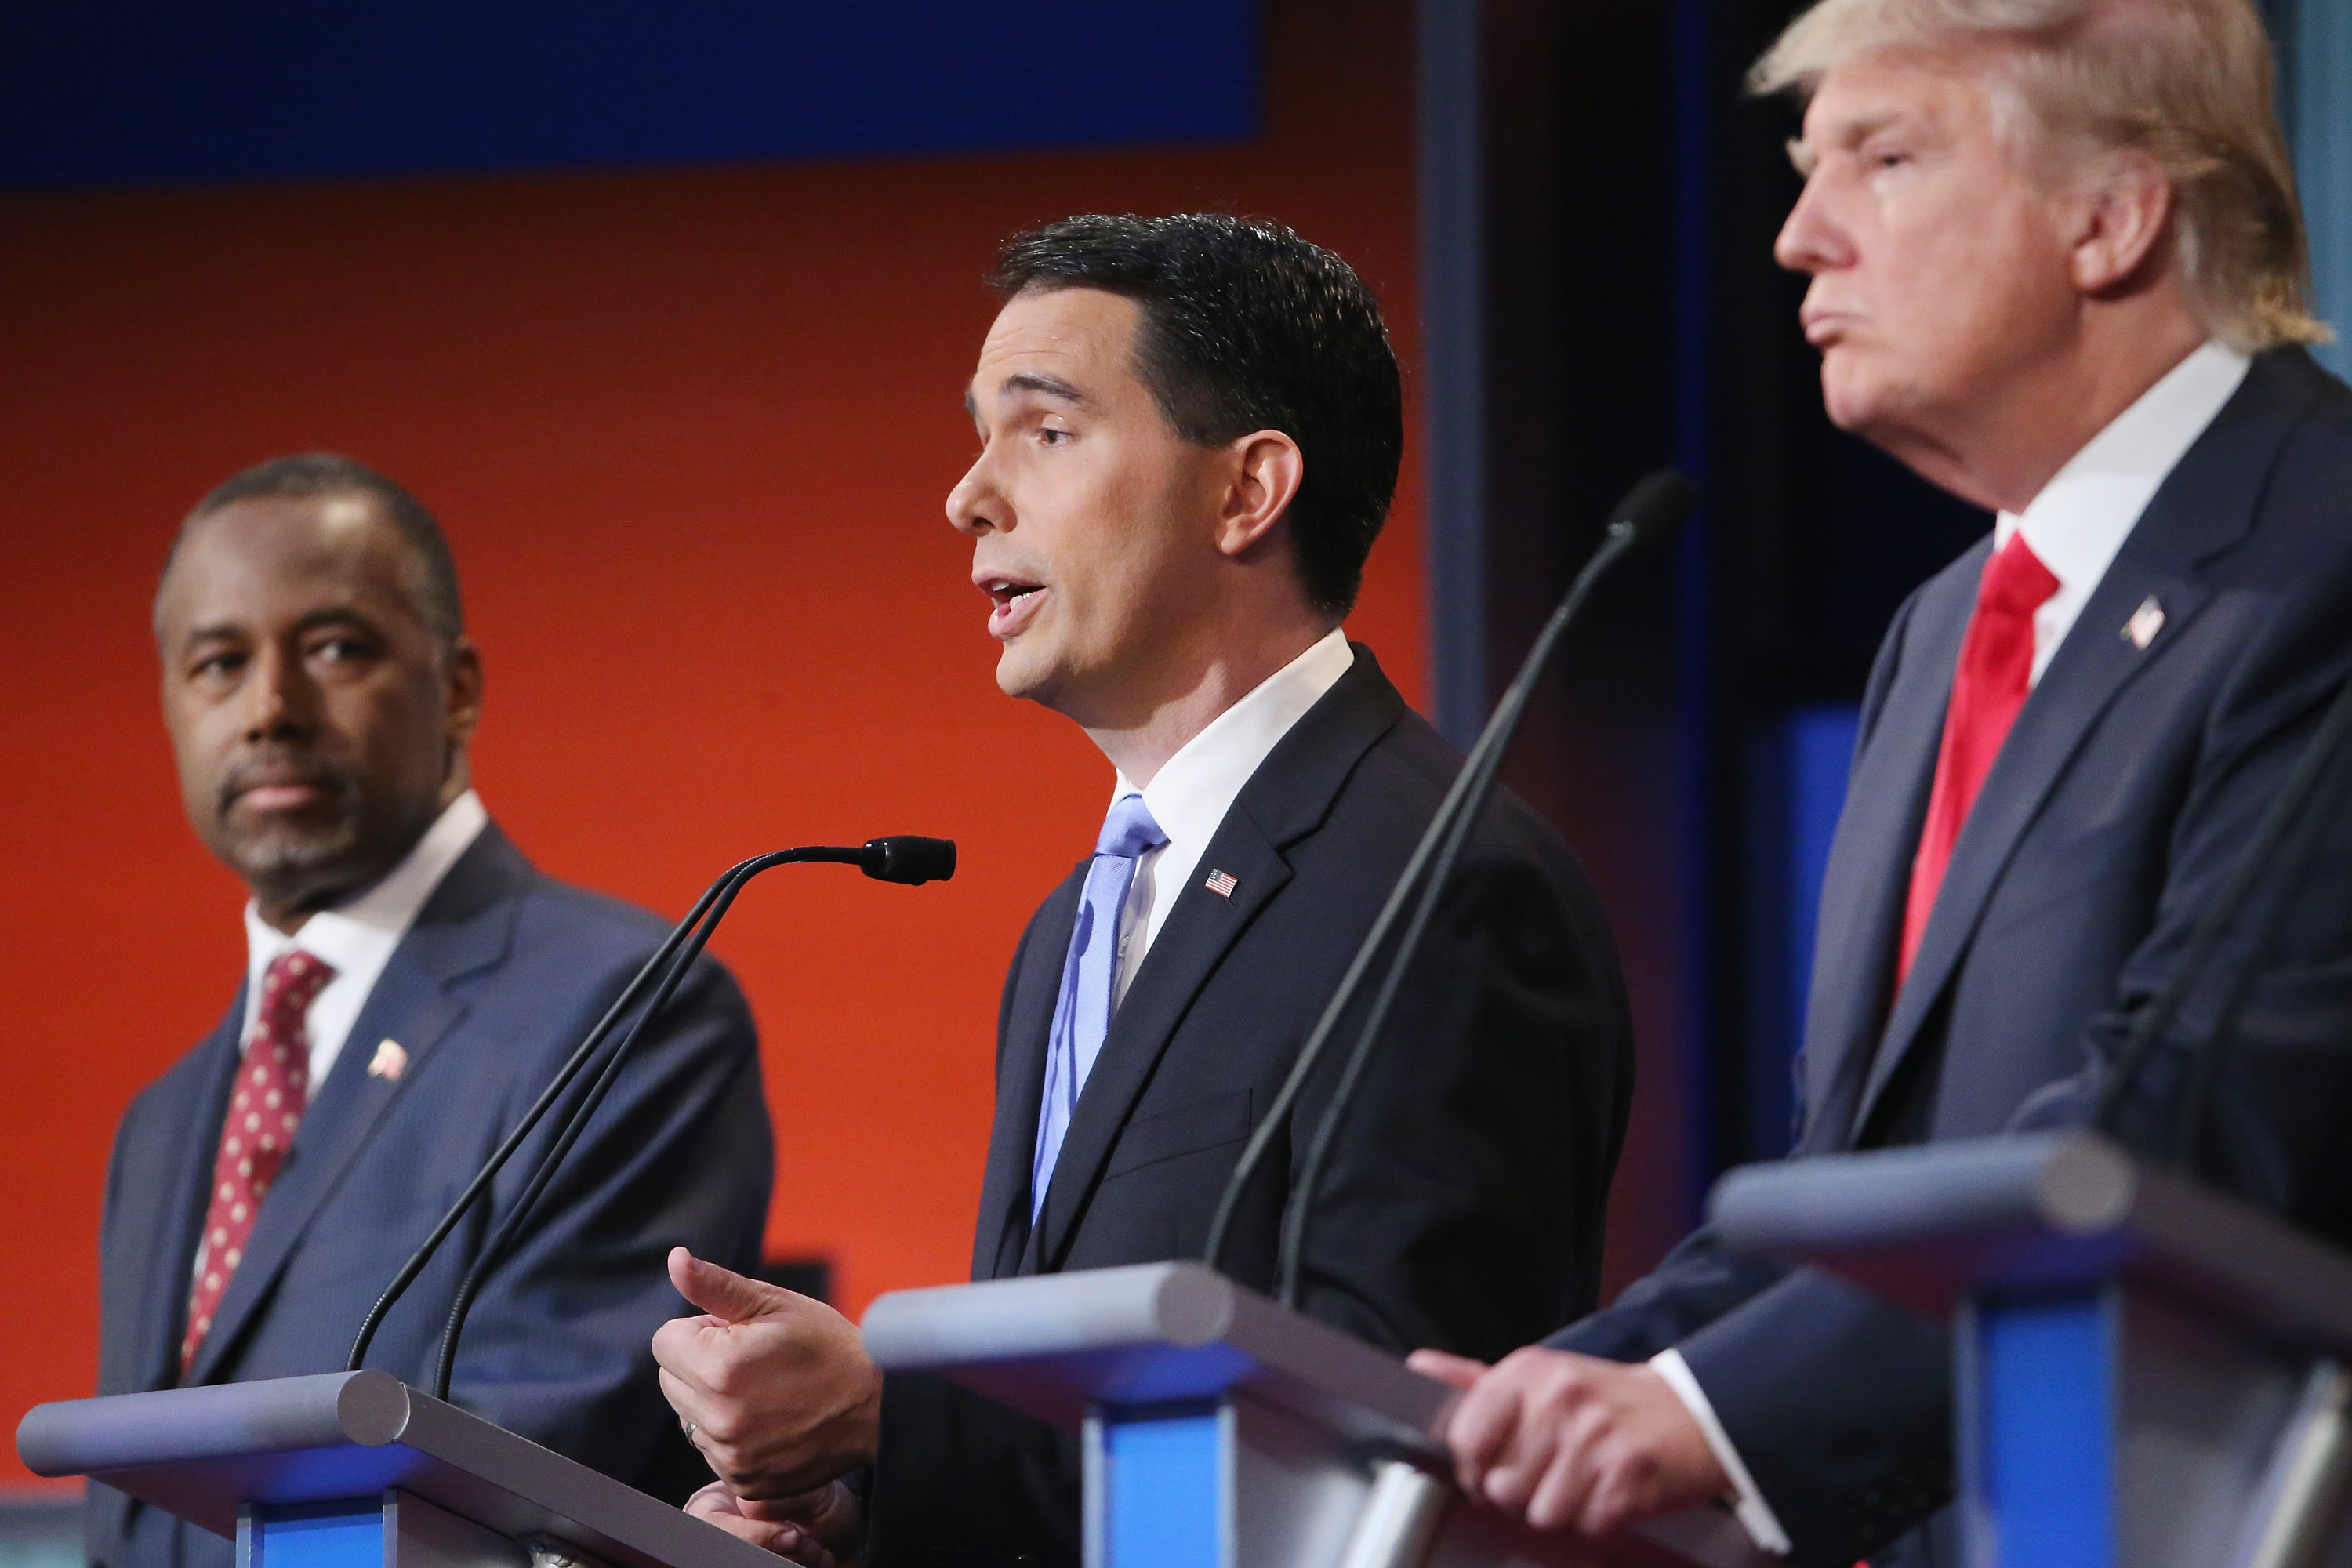 Republican presidential candidates (L-R) Ben Carson, Wisconsin Gov. Scott Walker and Donald Trump participate in the first prime-time presidential debate hosted by FOX News and Facebook at the Quicken Loans Arena August 6, 2015 in Cleveland, Ohio.